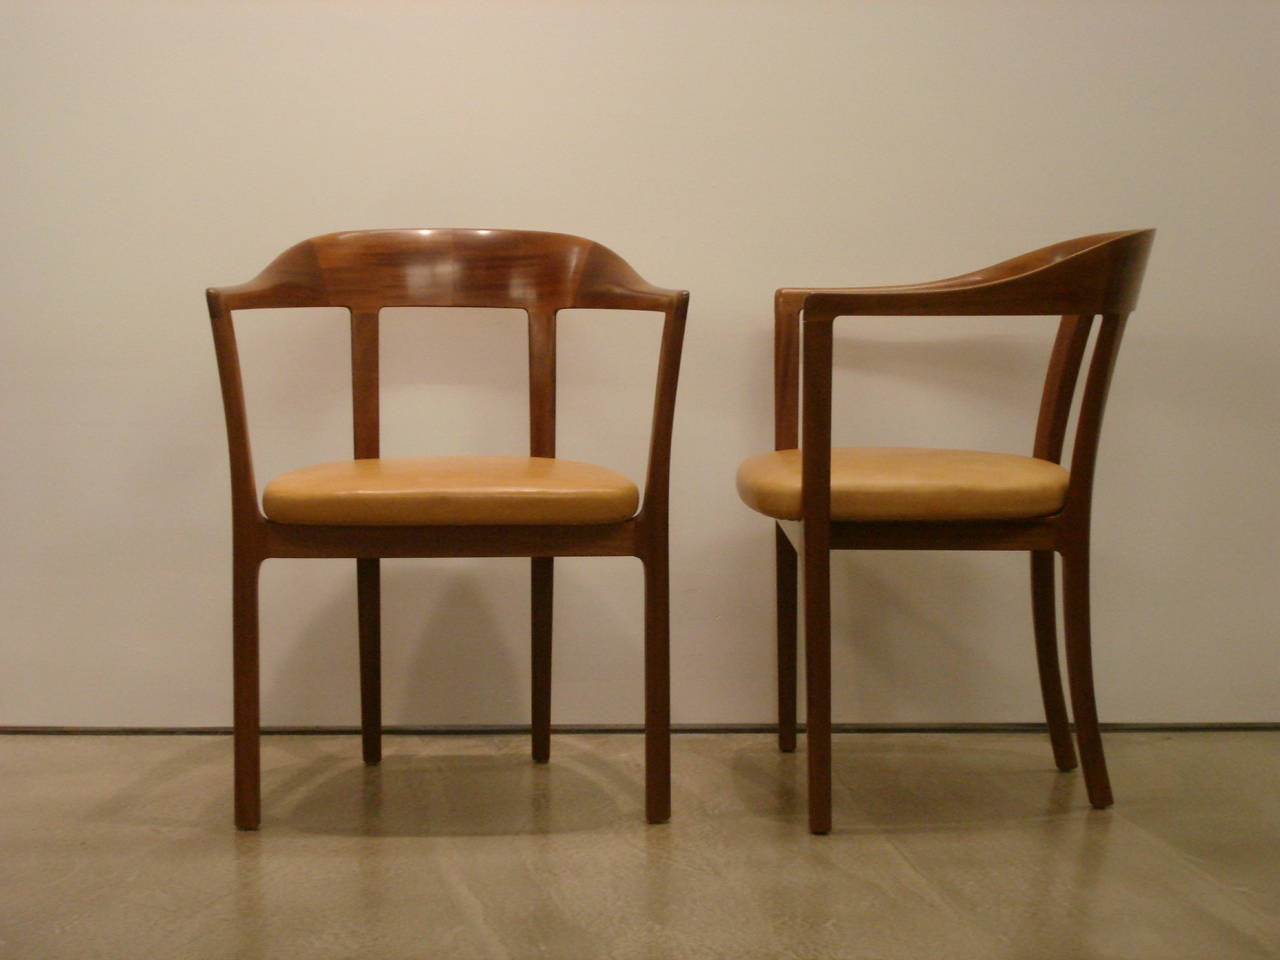 Ole Wanscher, Set of Four 1958 Armchairs in Mahogany and Original Leather Seats For Sale 2